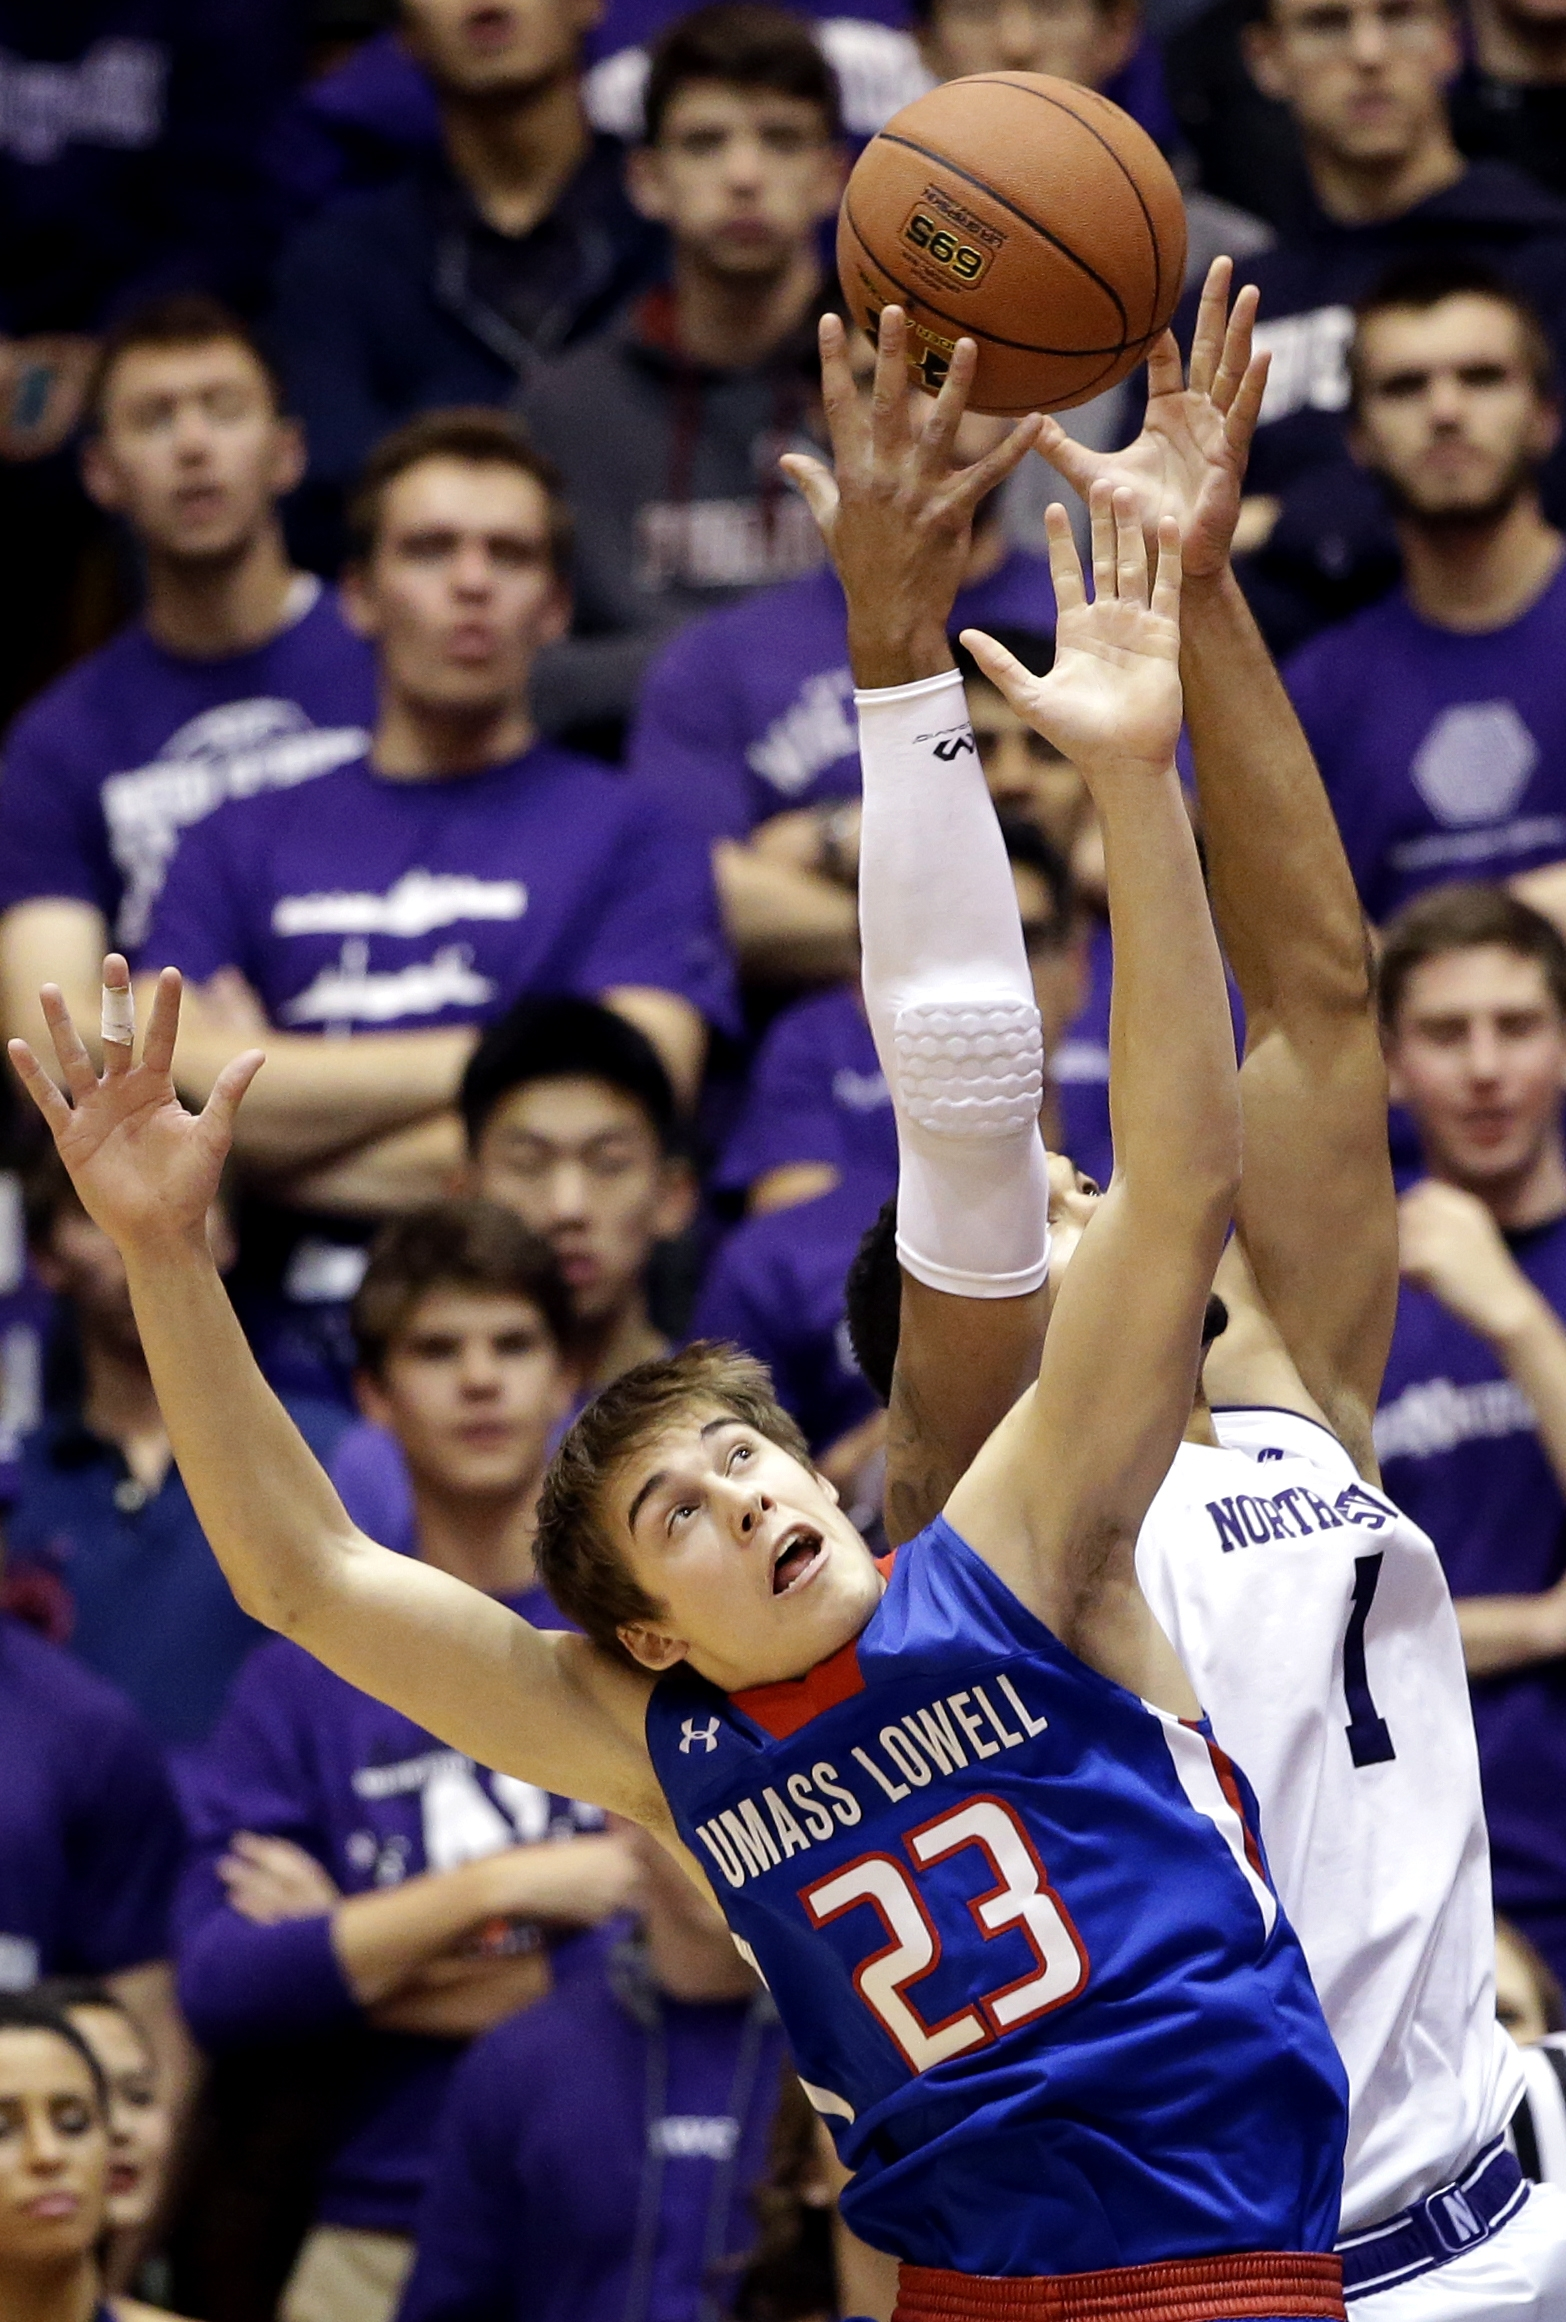 UMass-Lowell guard/forward Logan Primerano, left, and Northwestern center Joey van Zegeren battle for a rebound during the first half of an NCAA college basketball game Friday, Nov. 13, 2015, in Evanston, Ill. (AP Photo/Nam Y. Huh)